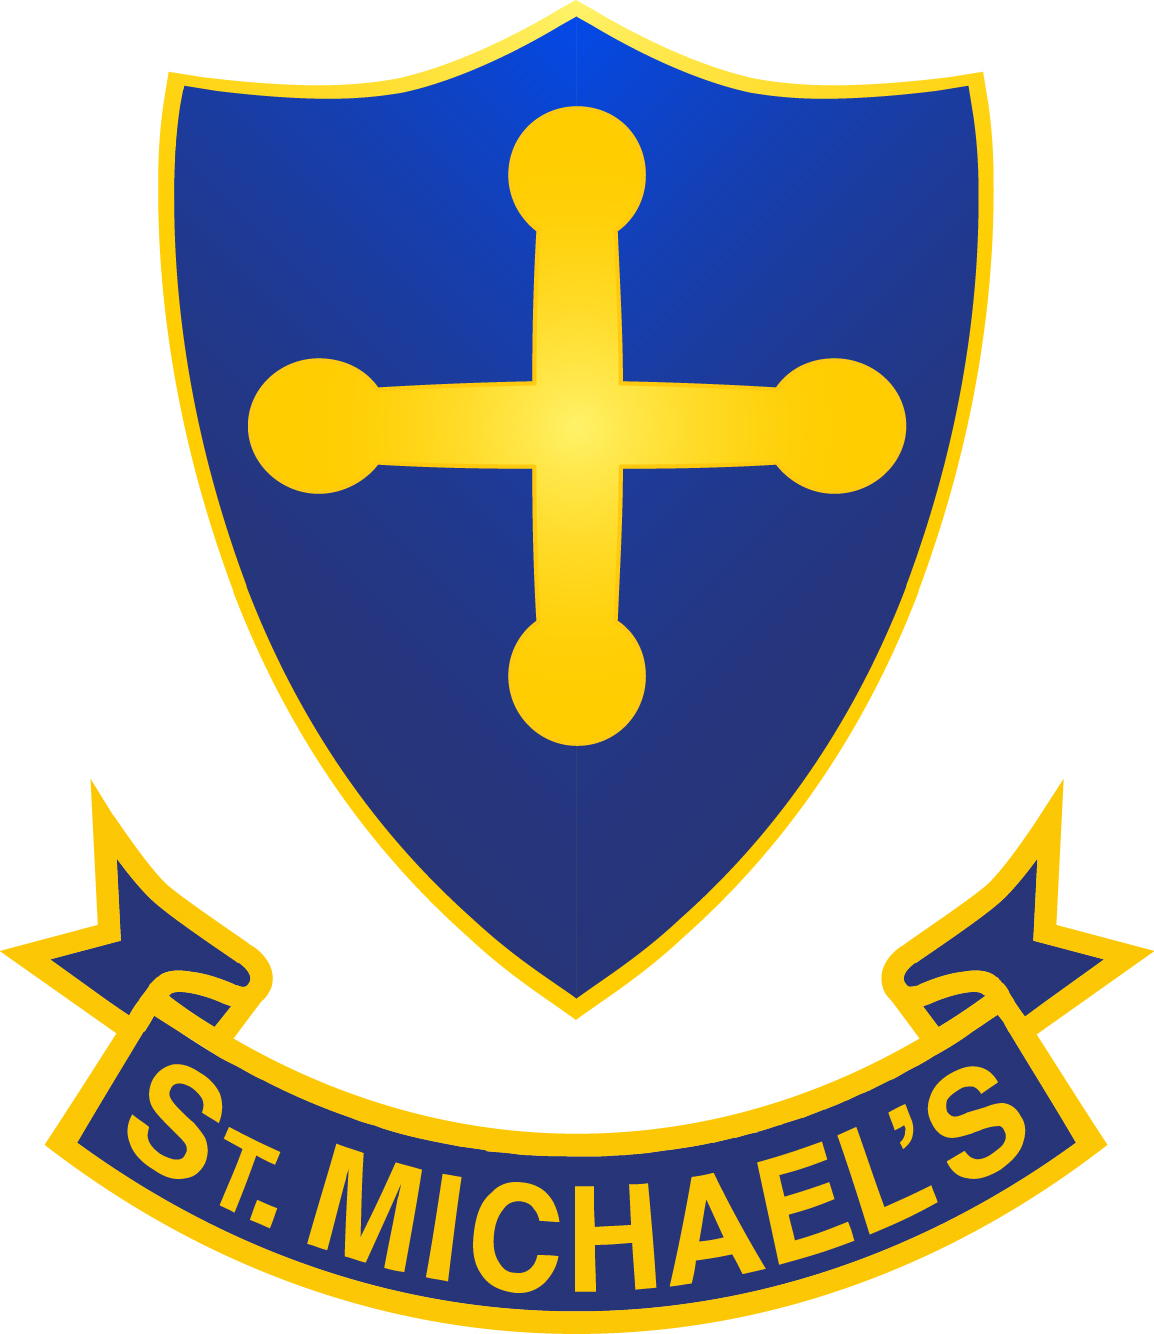 St Michael's Preparatory School